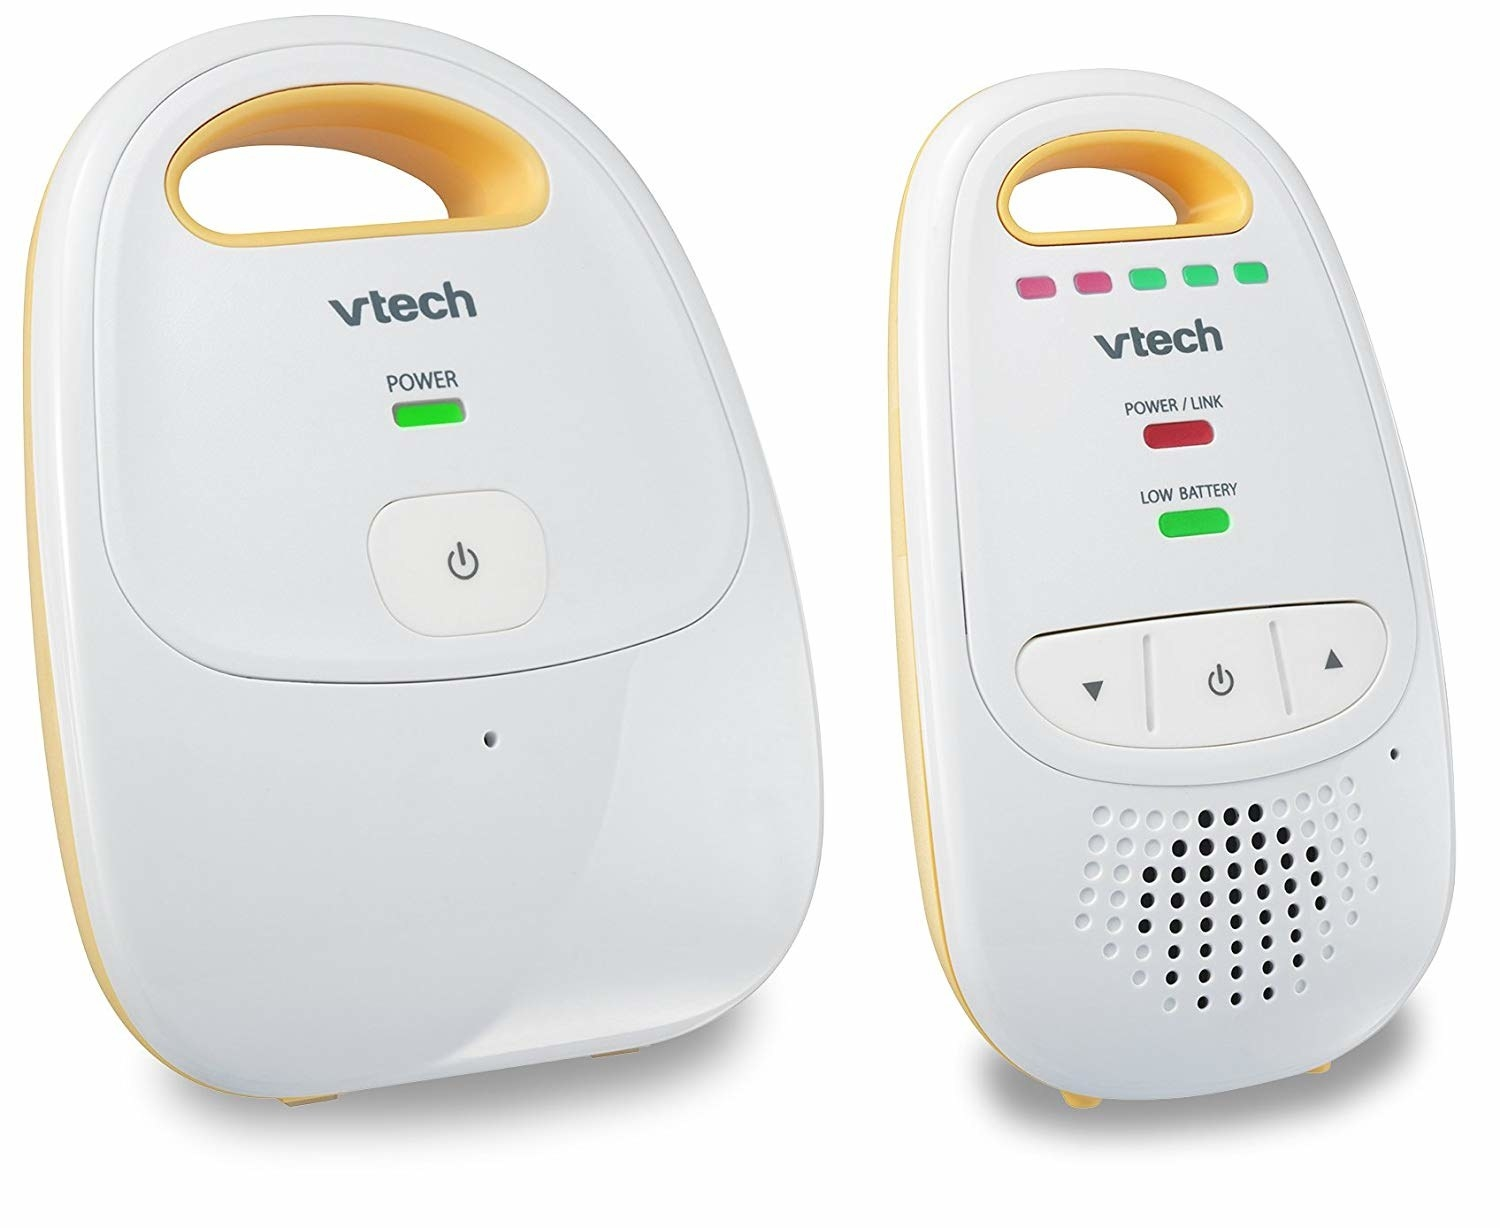 A round plastic baby monitor device with a walkie talkie next to it